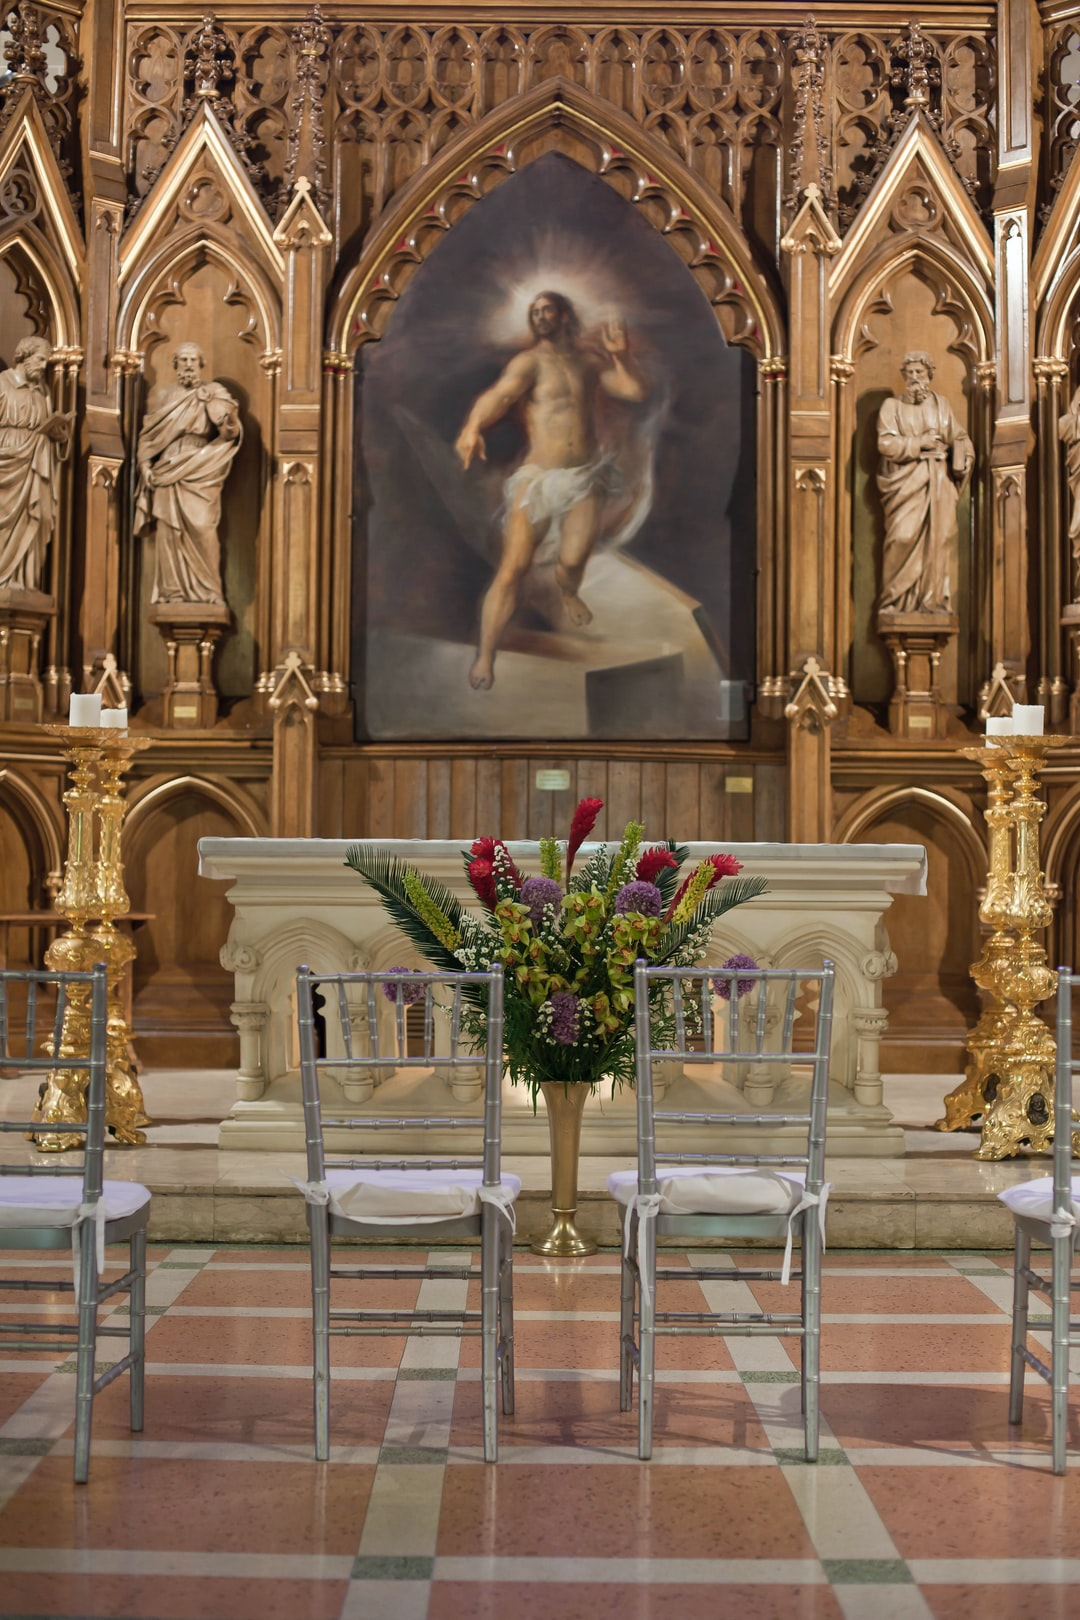 This is in this cathedral that the baptism scene from the Godfather, Part 1 has been shot.